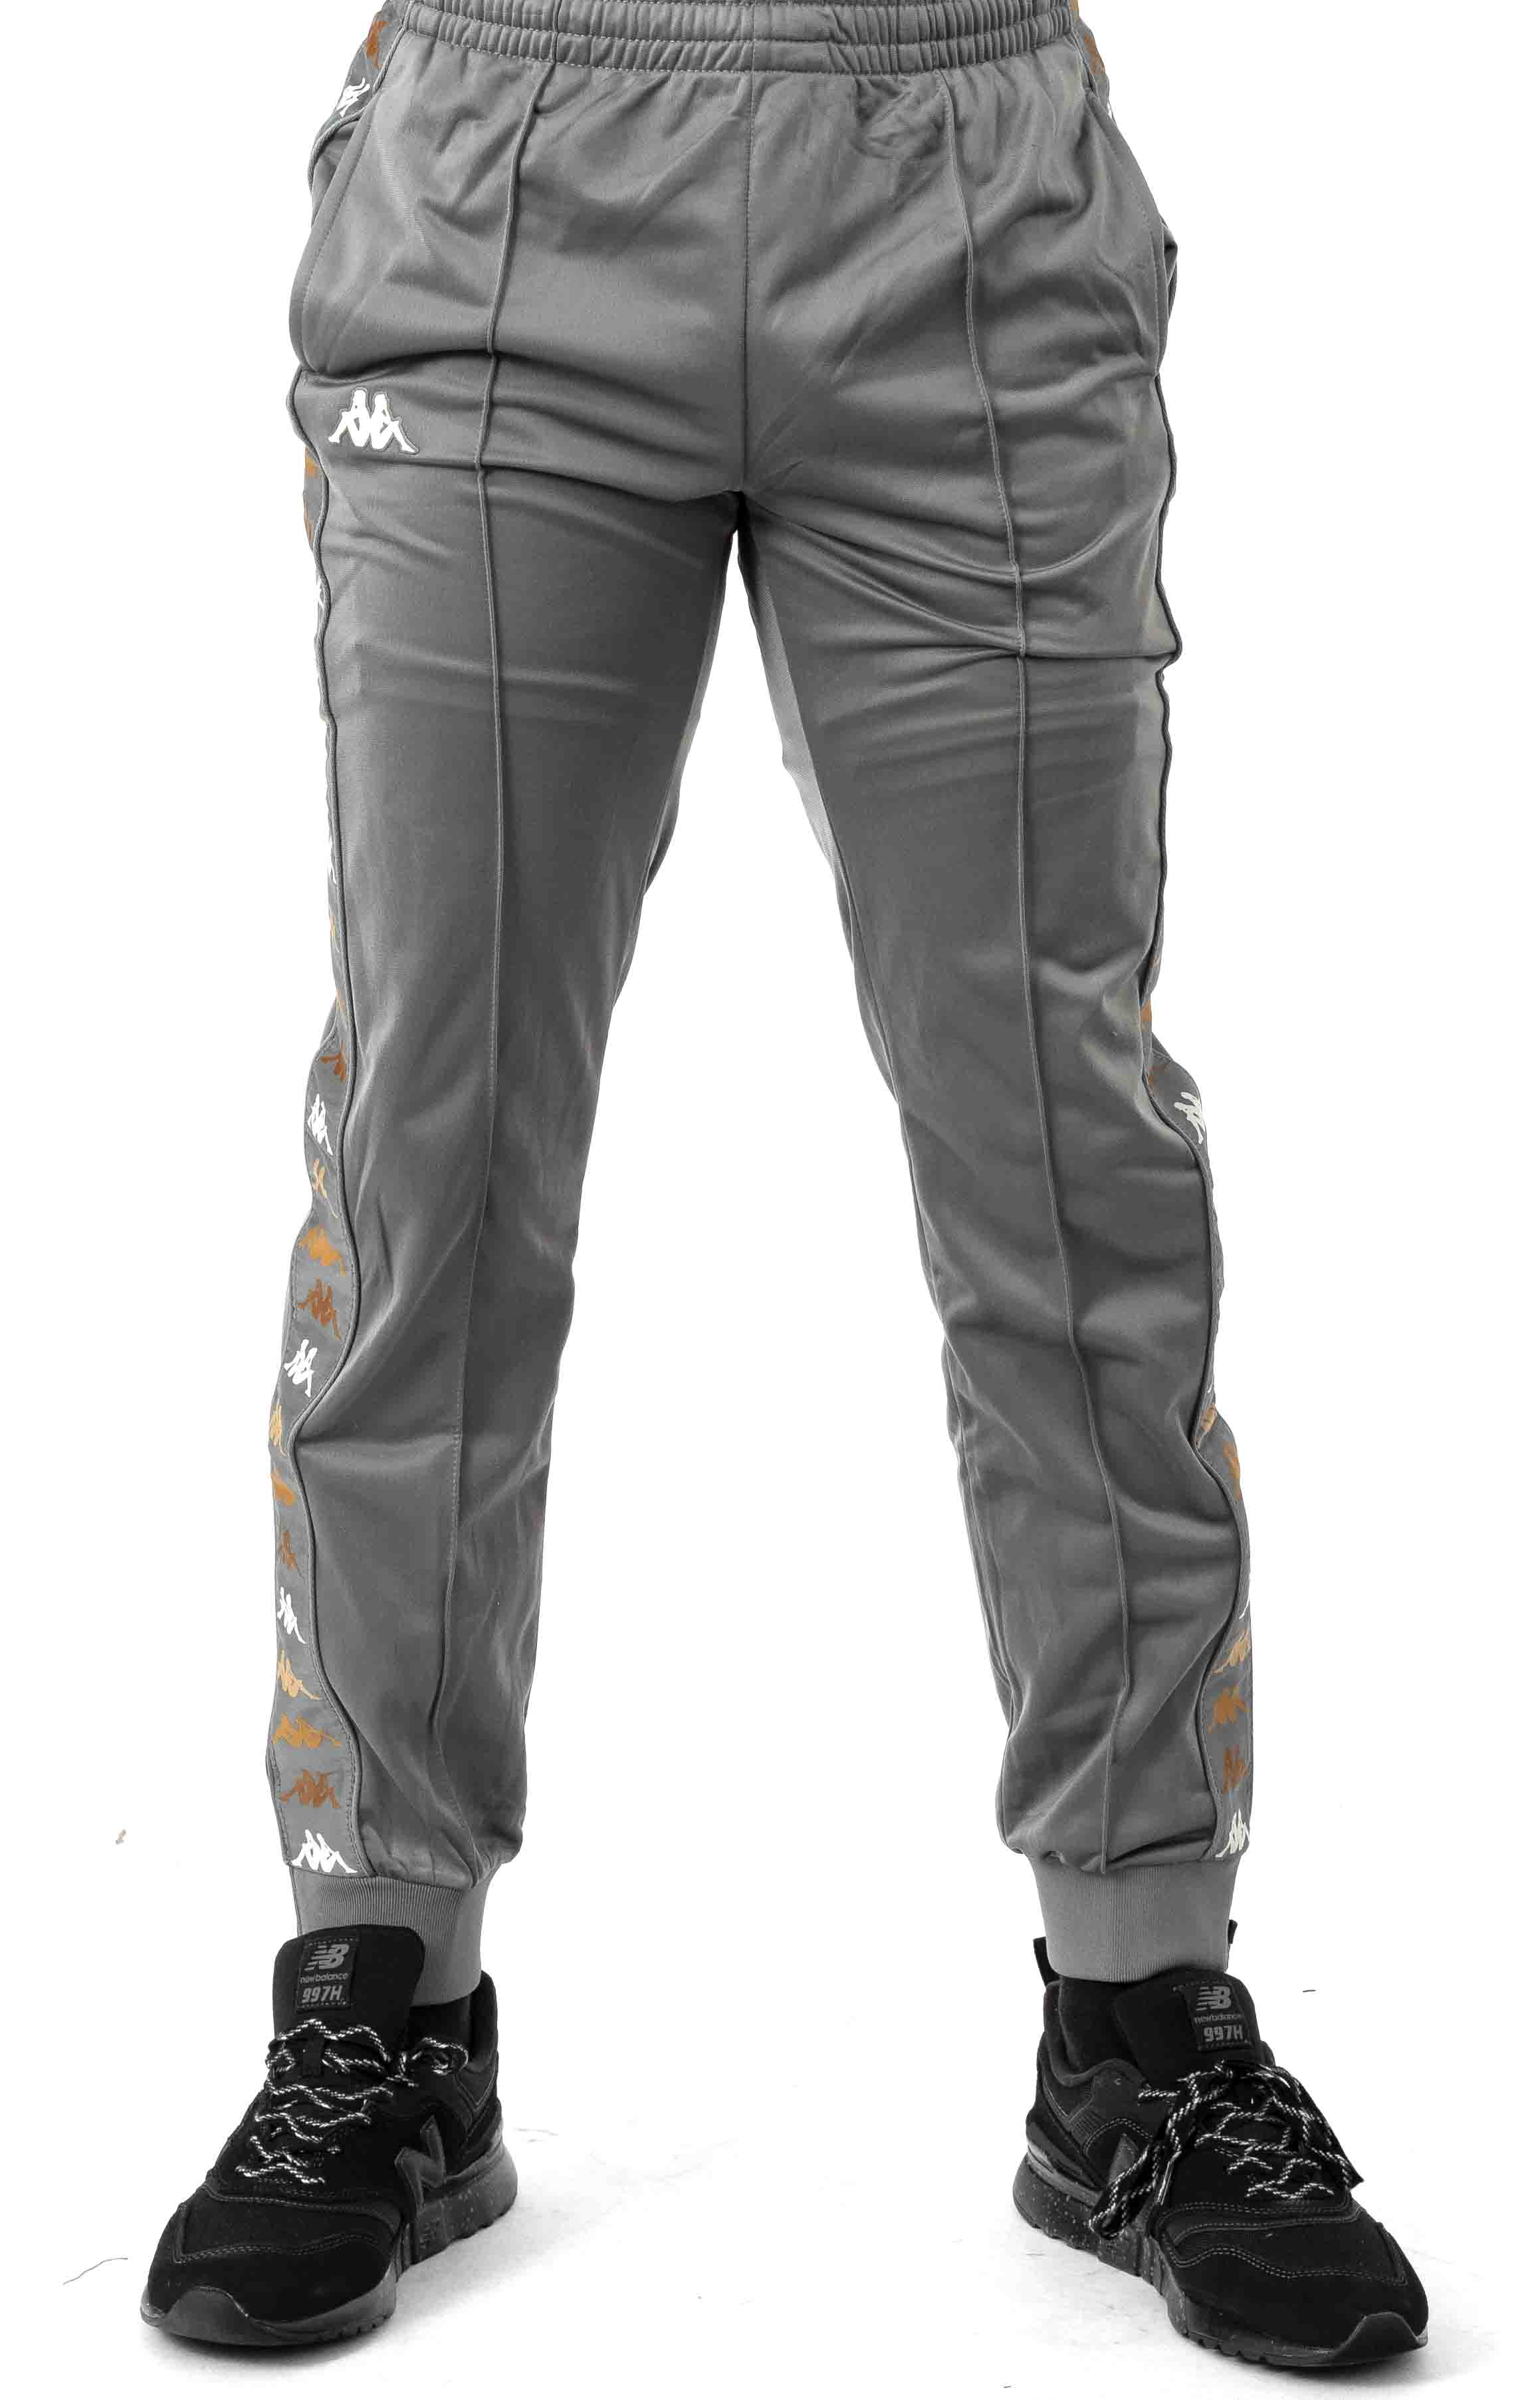 222 Banda Deky Track Pants - Grey/Winter White 2